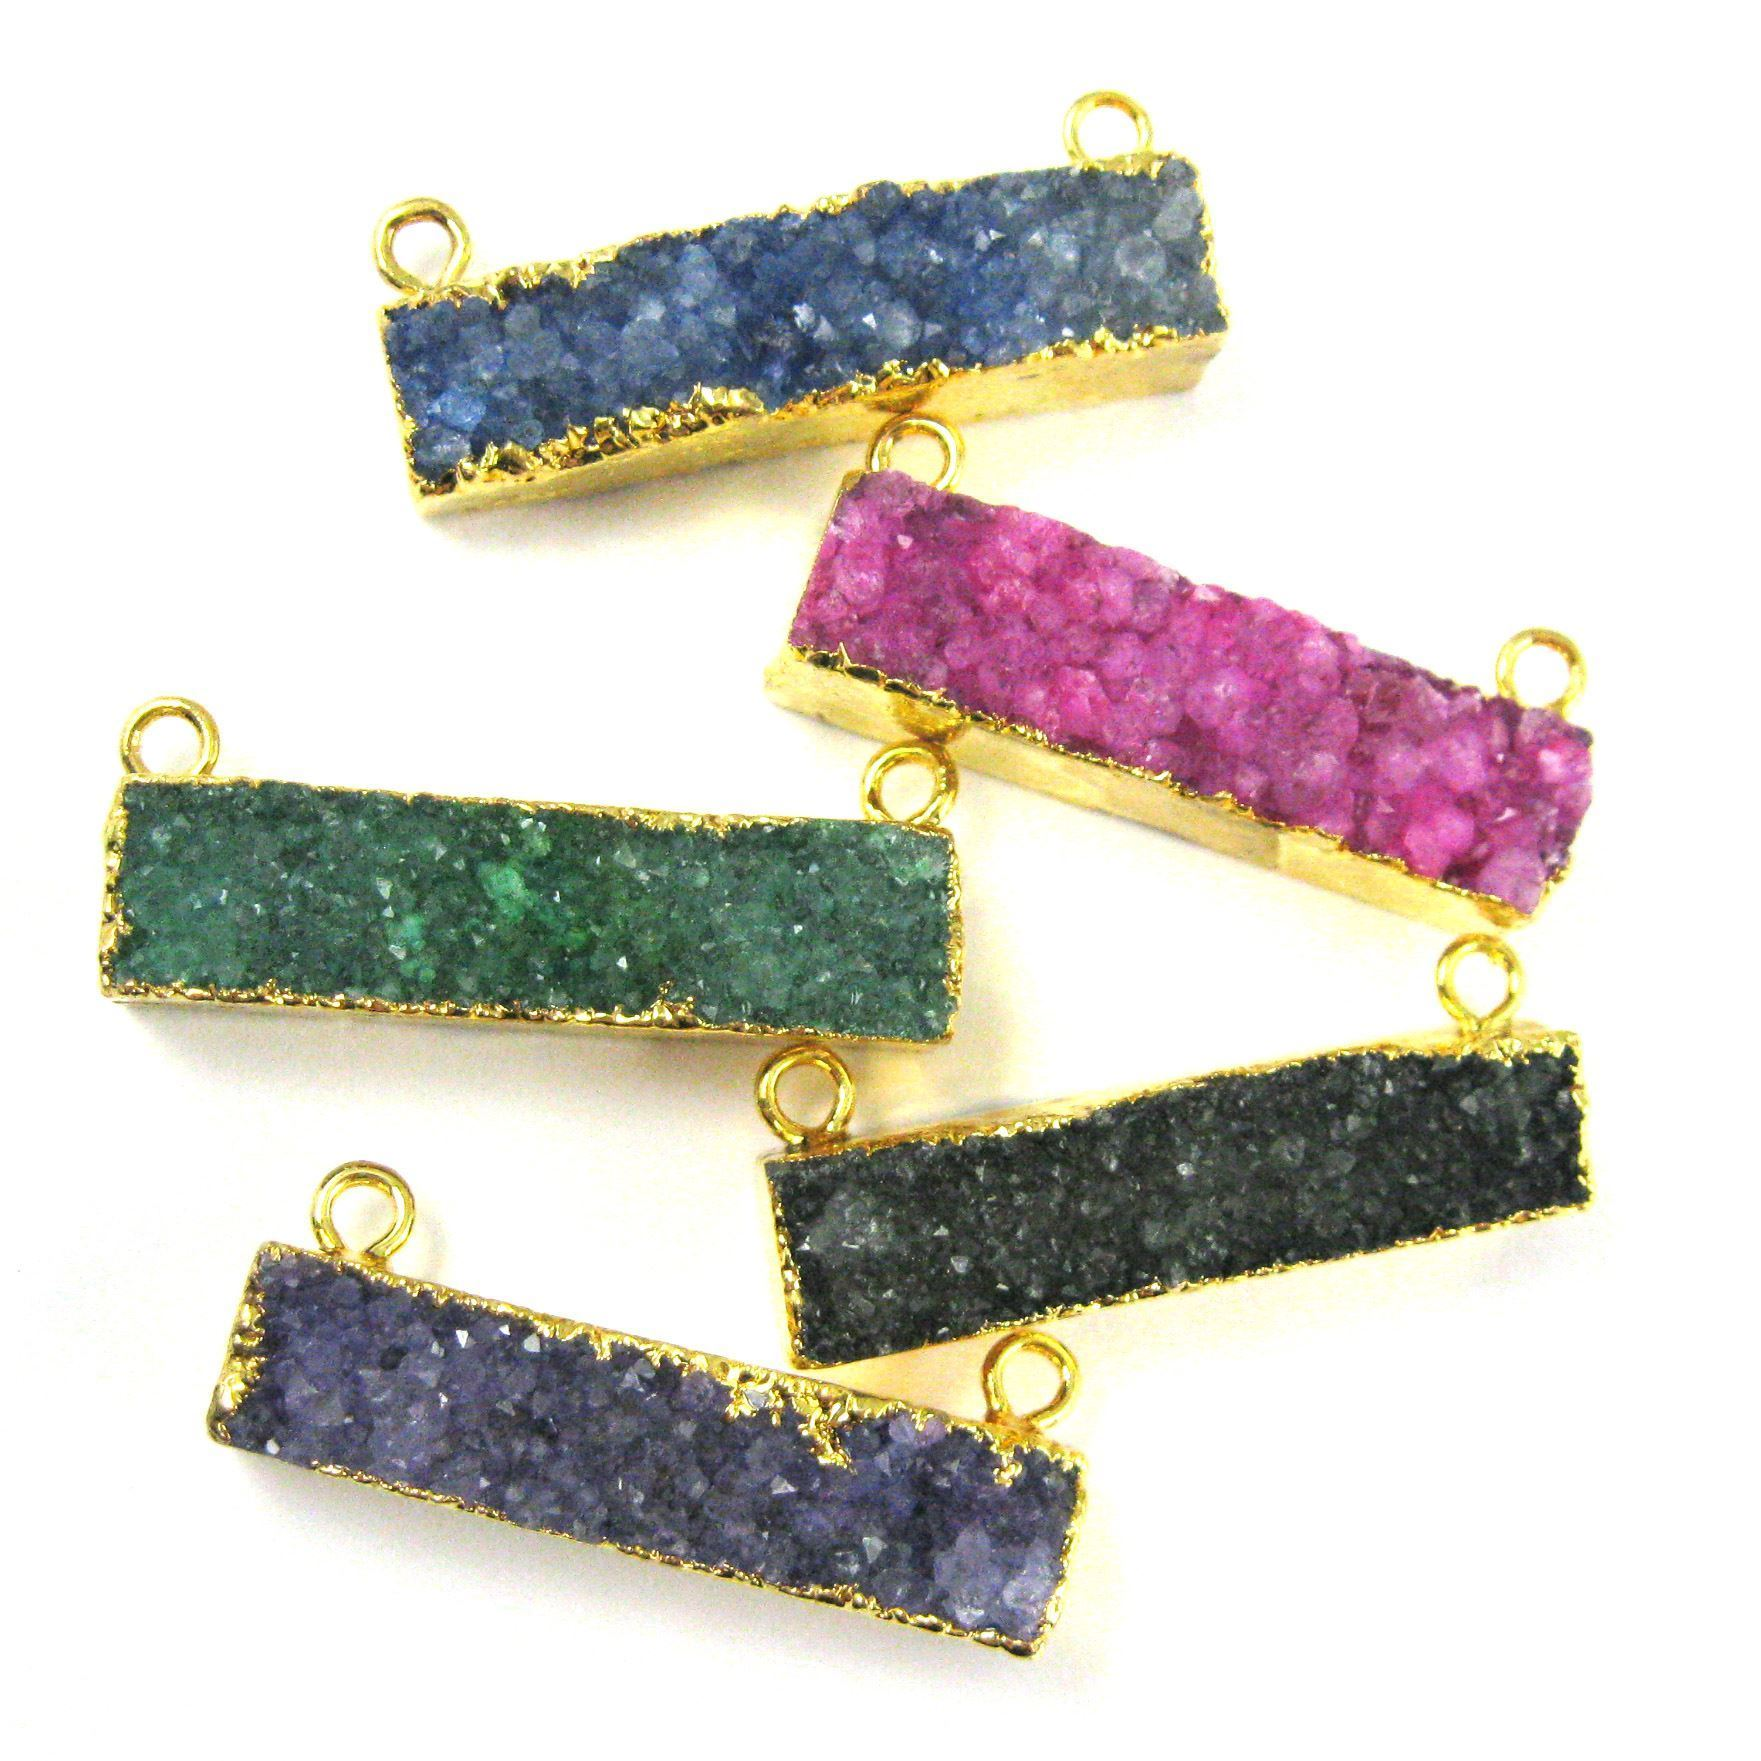 Druzy Gemstone Bar Pendant, Natural Rainbow Agate Gold Dipped Connector Pendant, Top Rings - Pink Agate -35mm